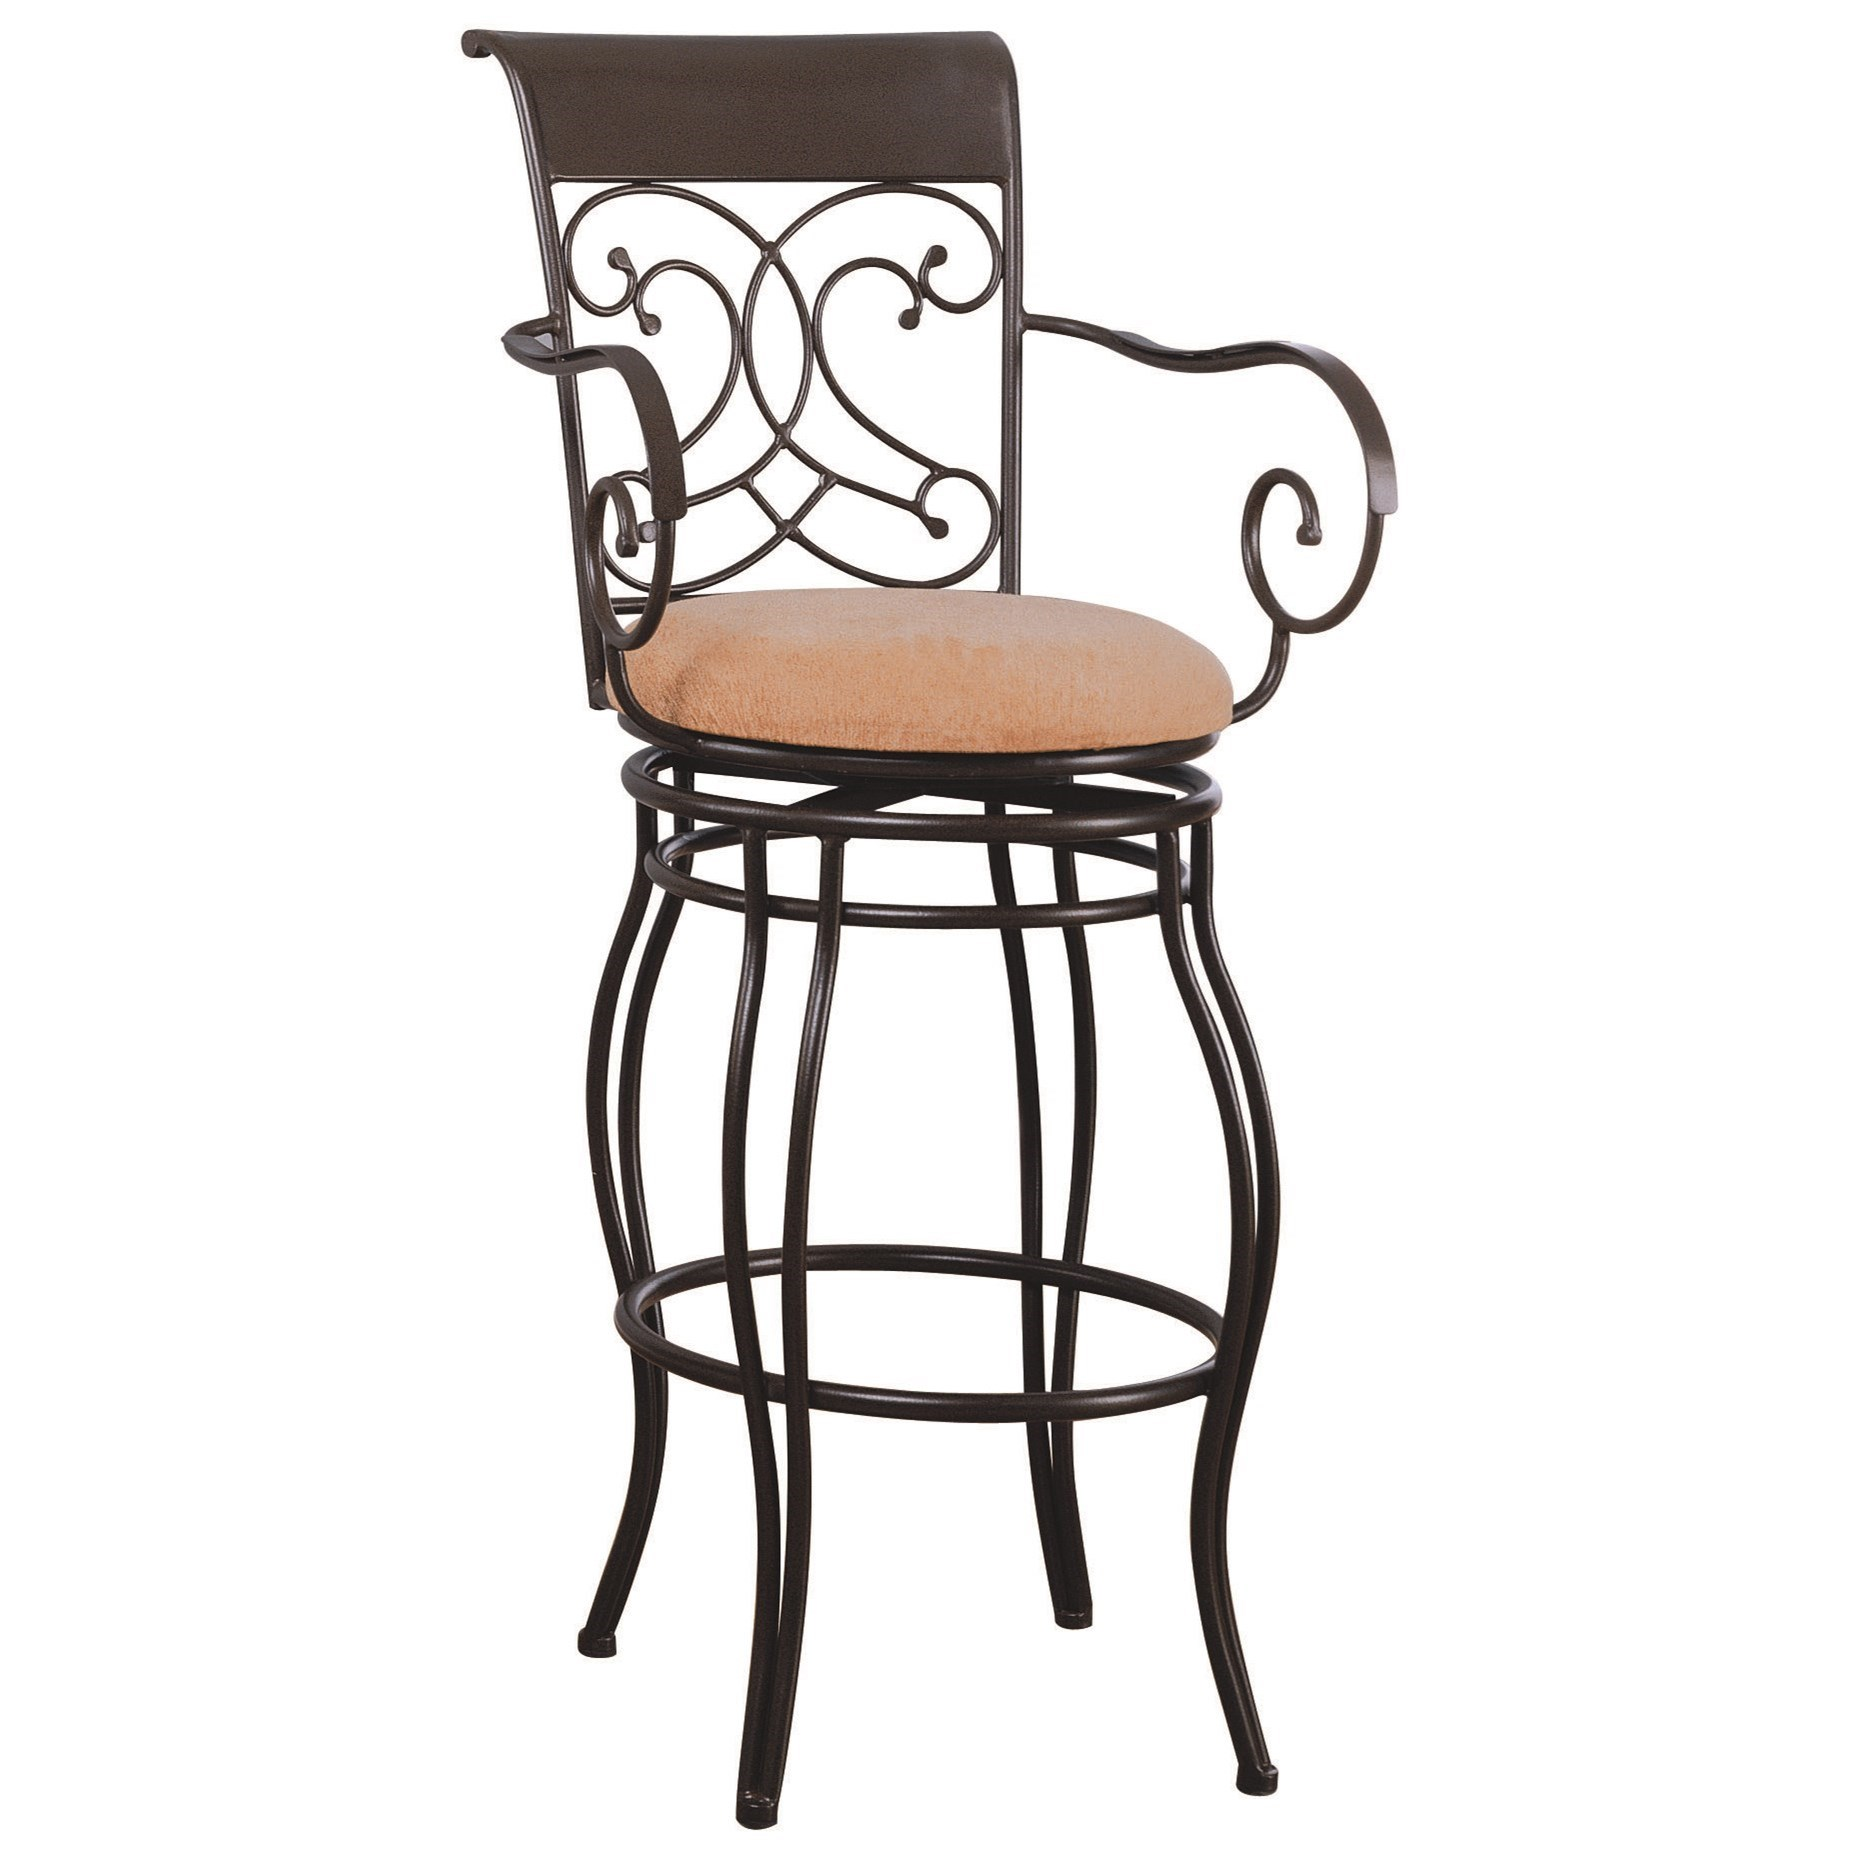 Coaster Dining Chairs And Bar Stools 120019 29 Quot Metal Bar